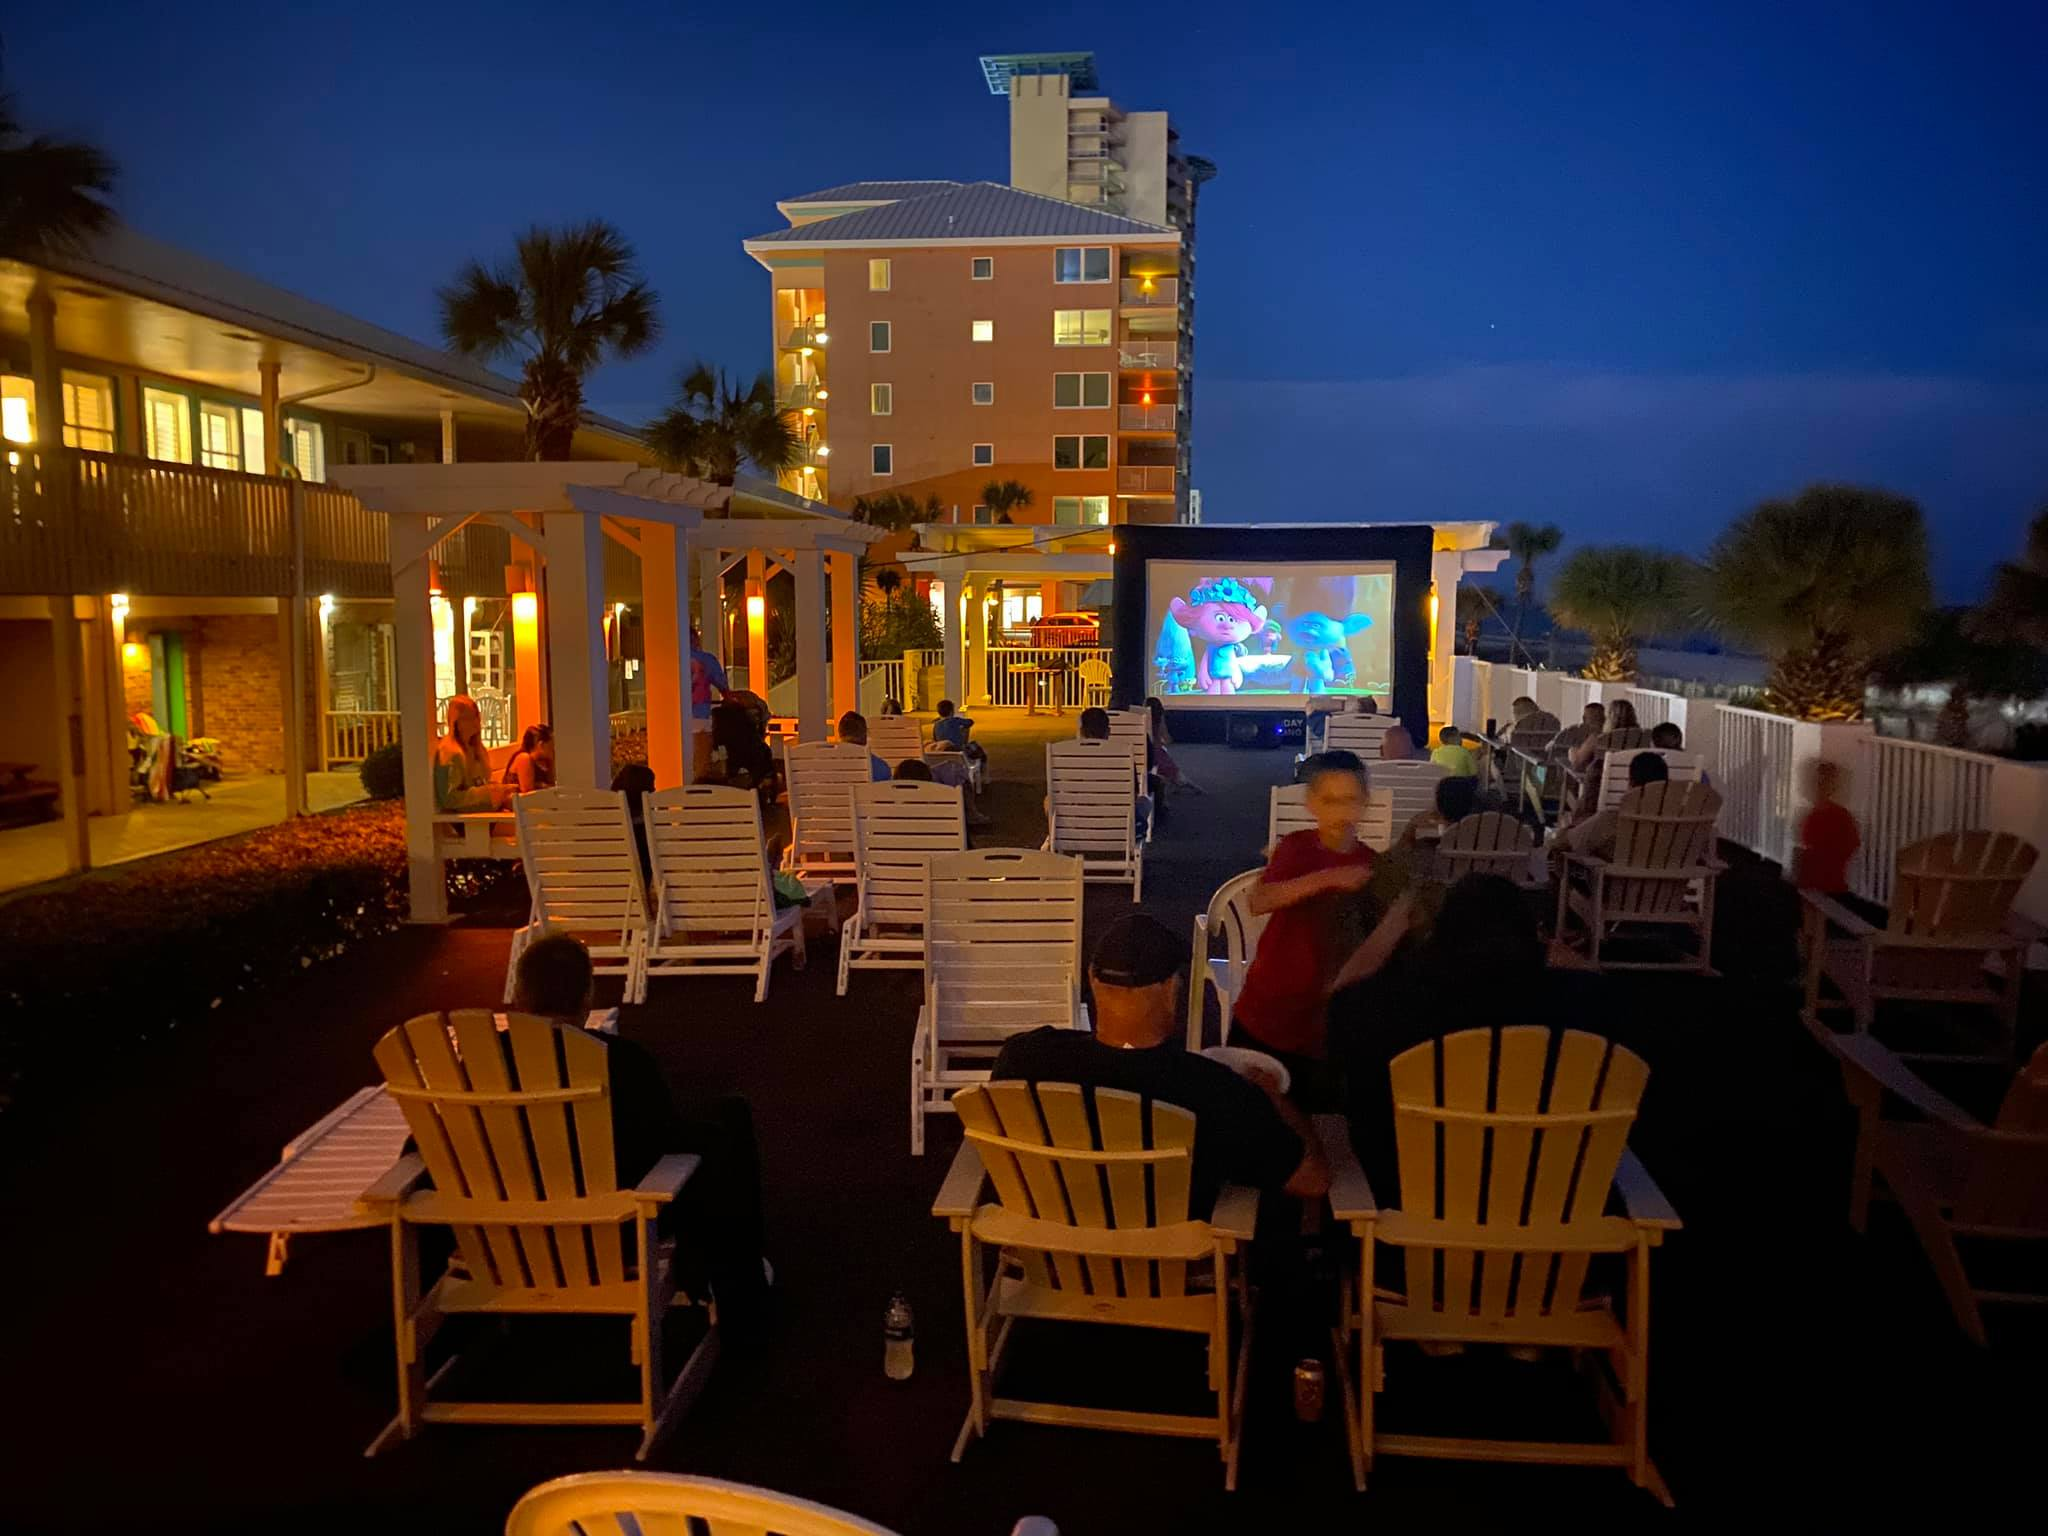 Surfside Cinema